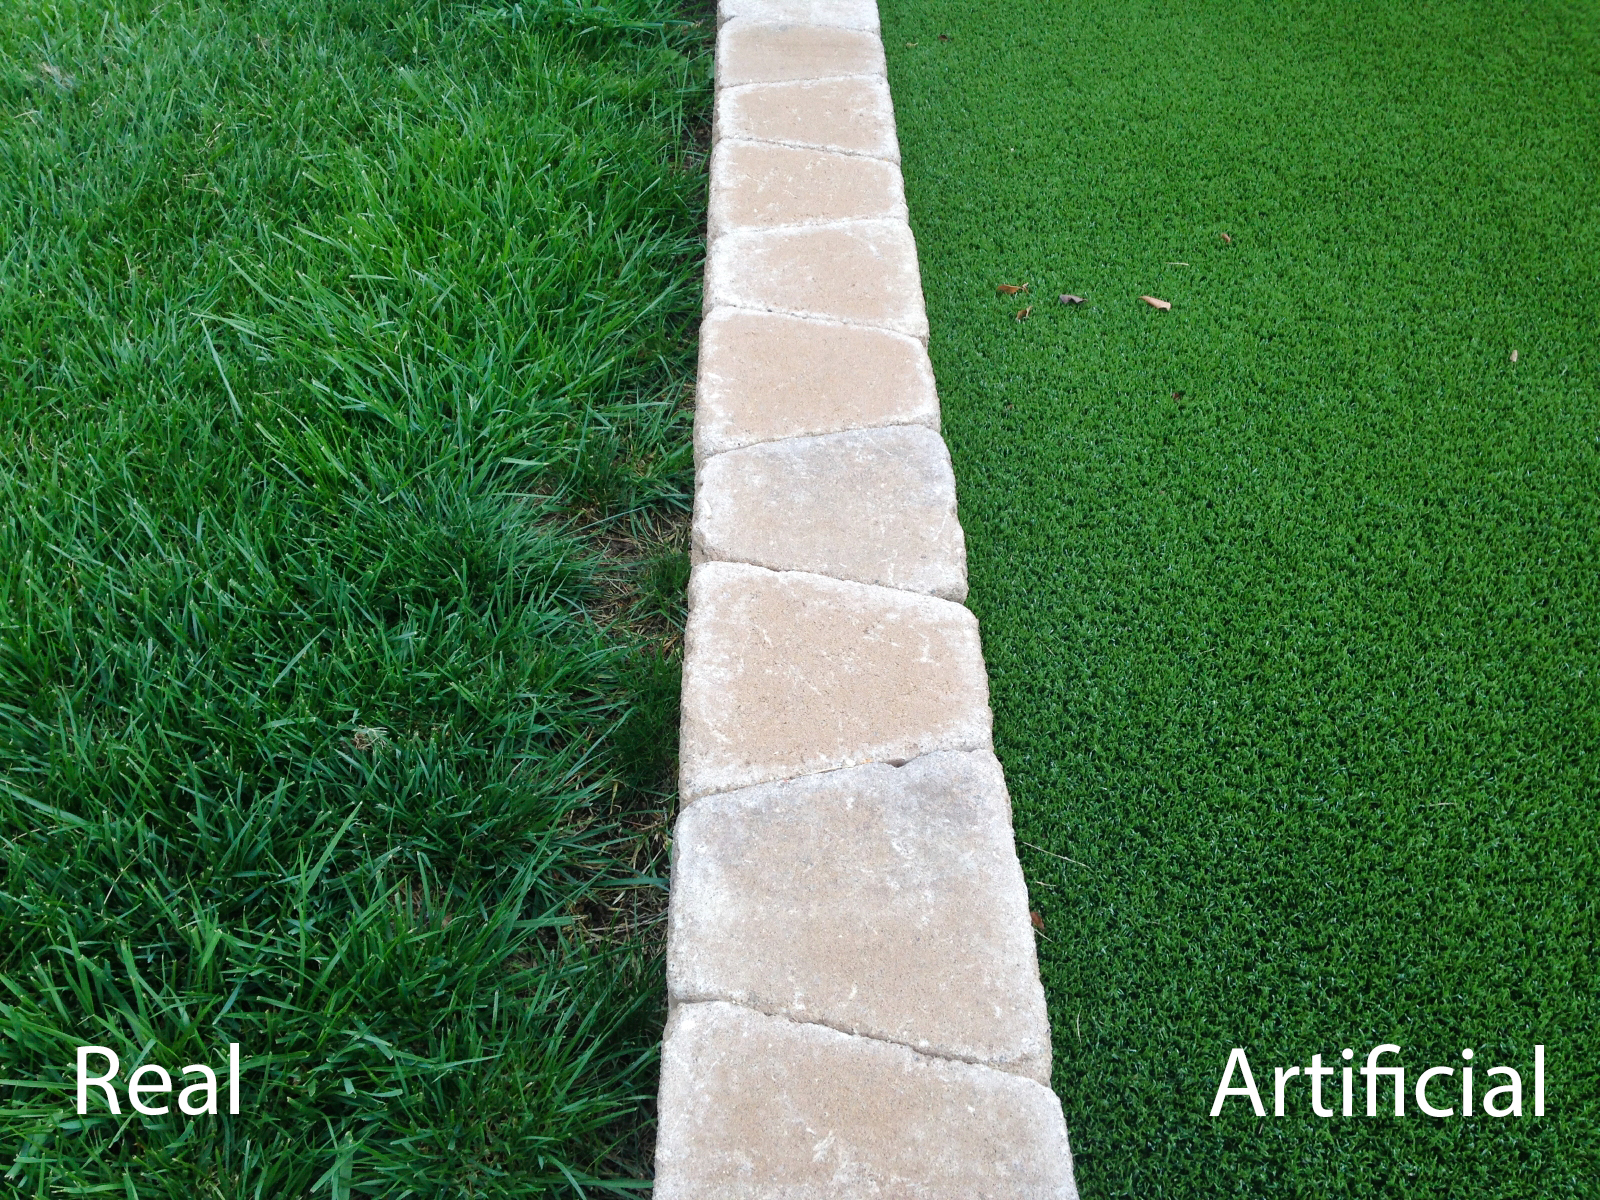 Artificial Grass Vs Turf For Real Vs Artificial Turf Factors To Keep In Mind About Artificial Turf Fields Mirimichi Green